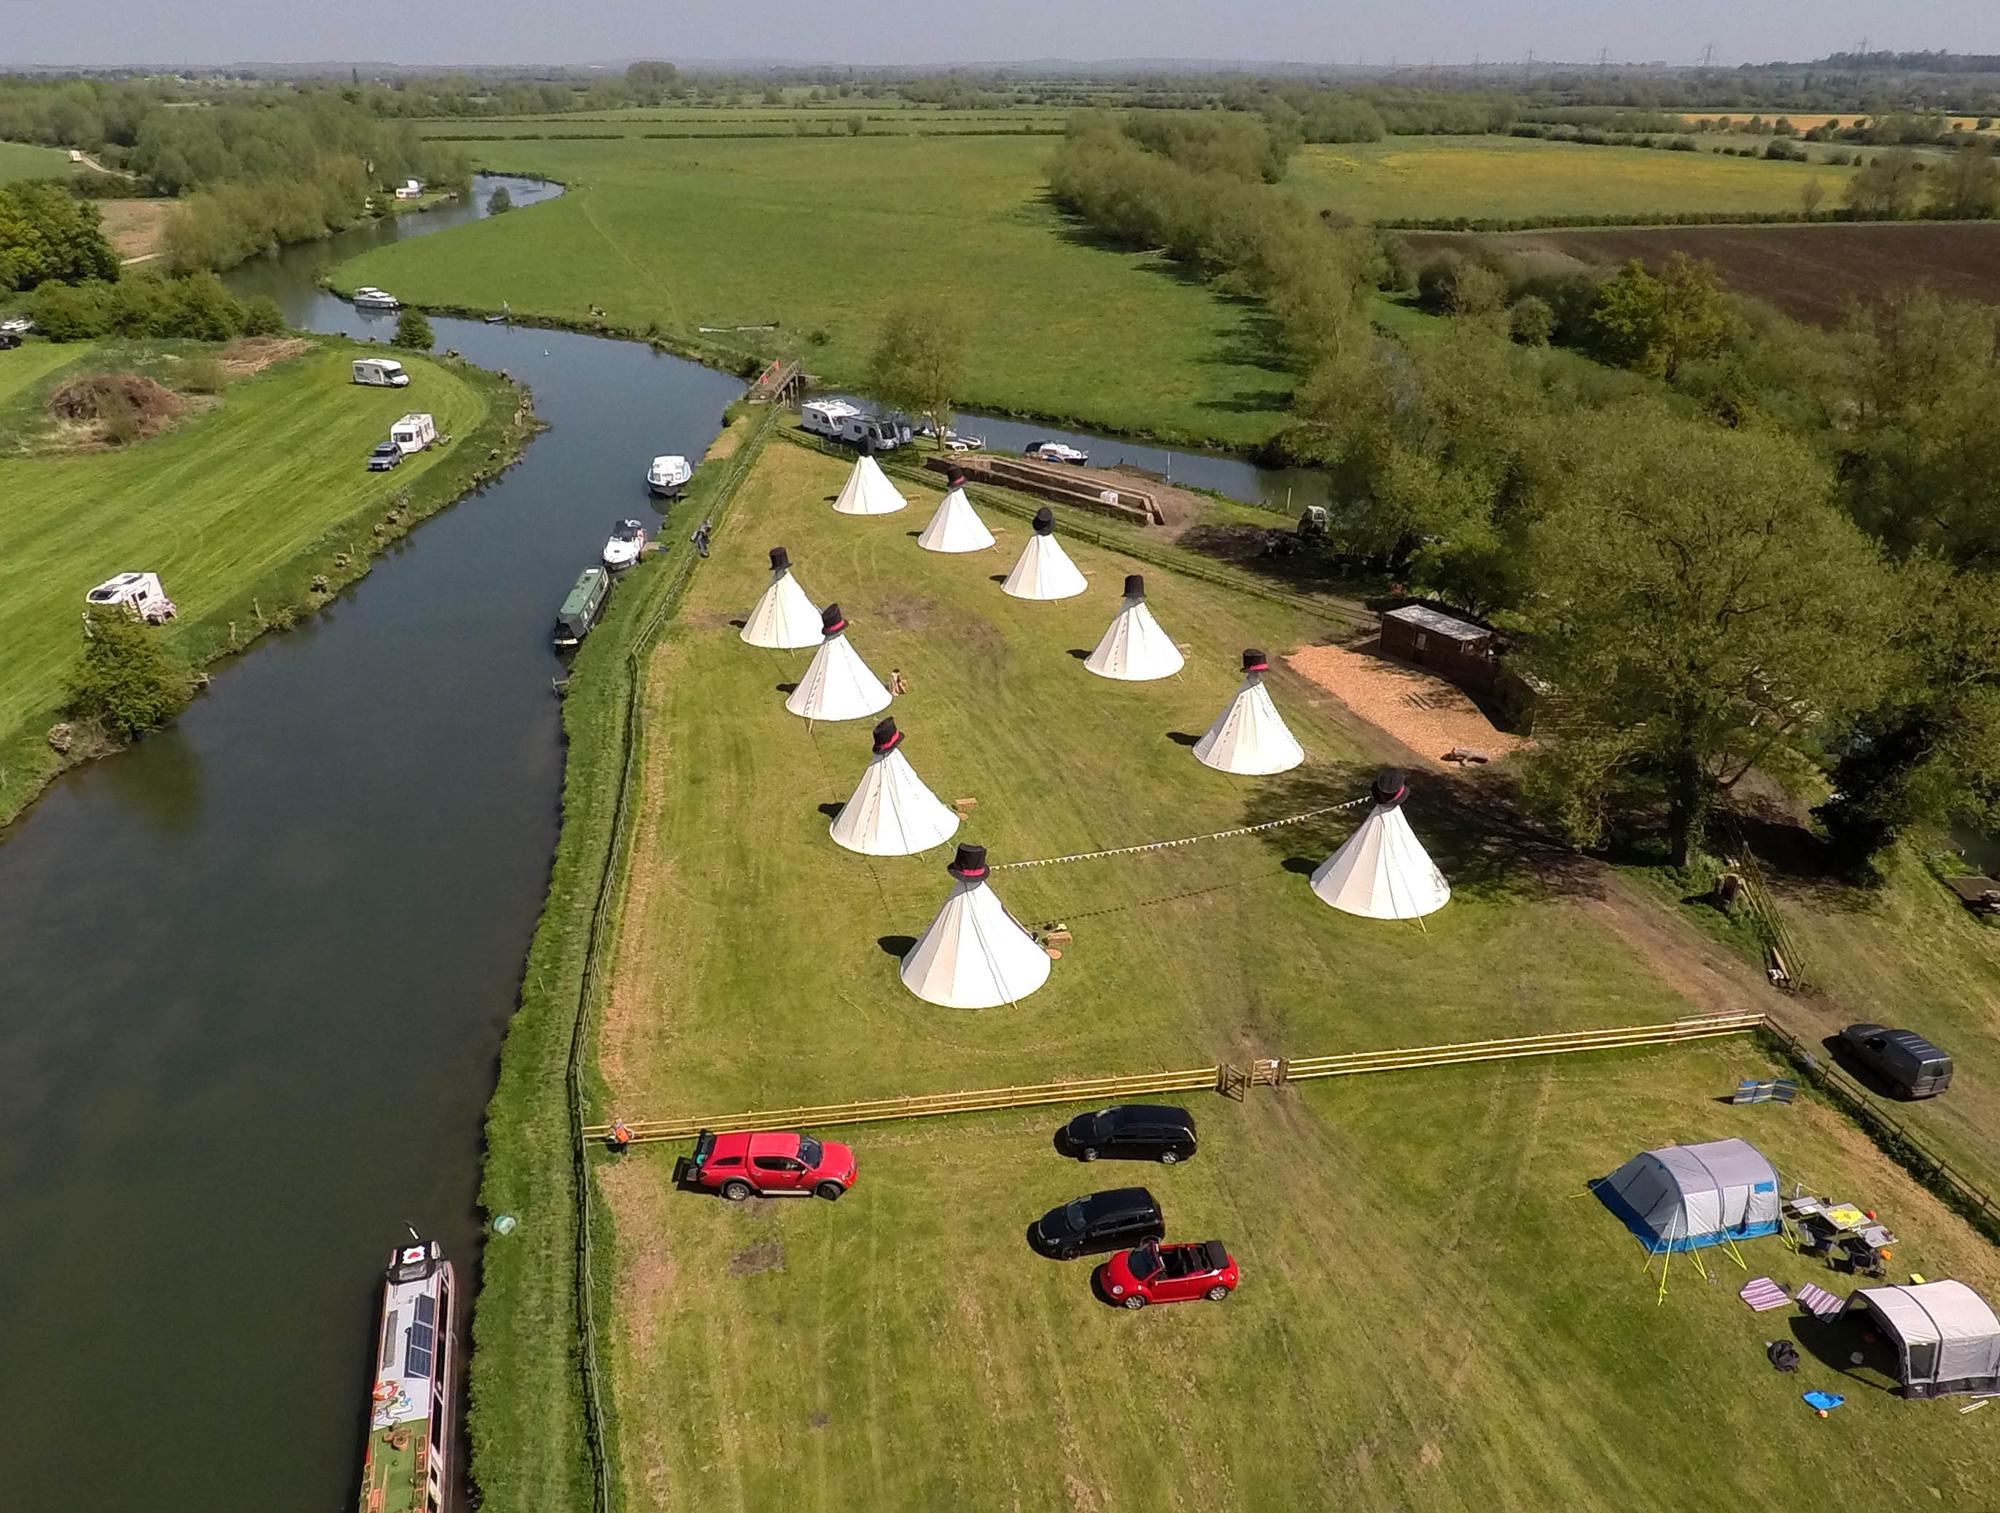 Campsites in South East England holidays at I Love This Campsite